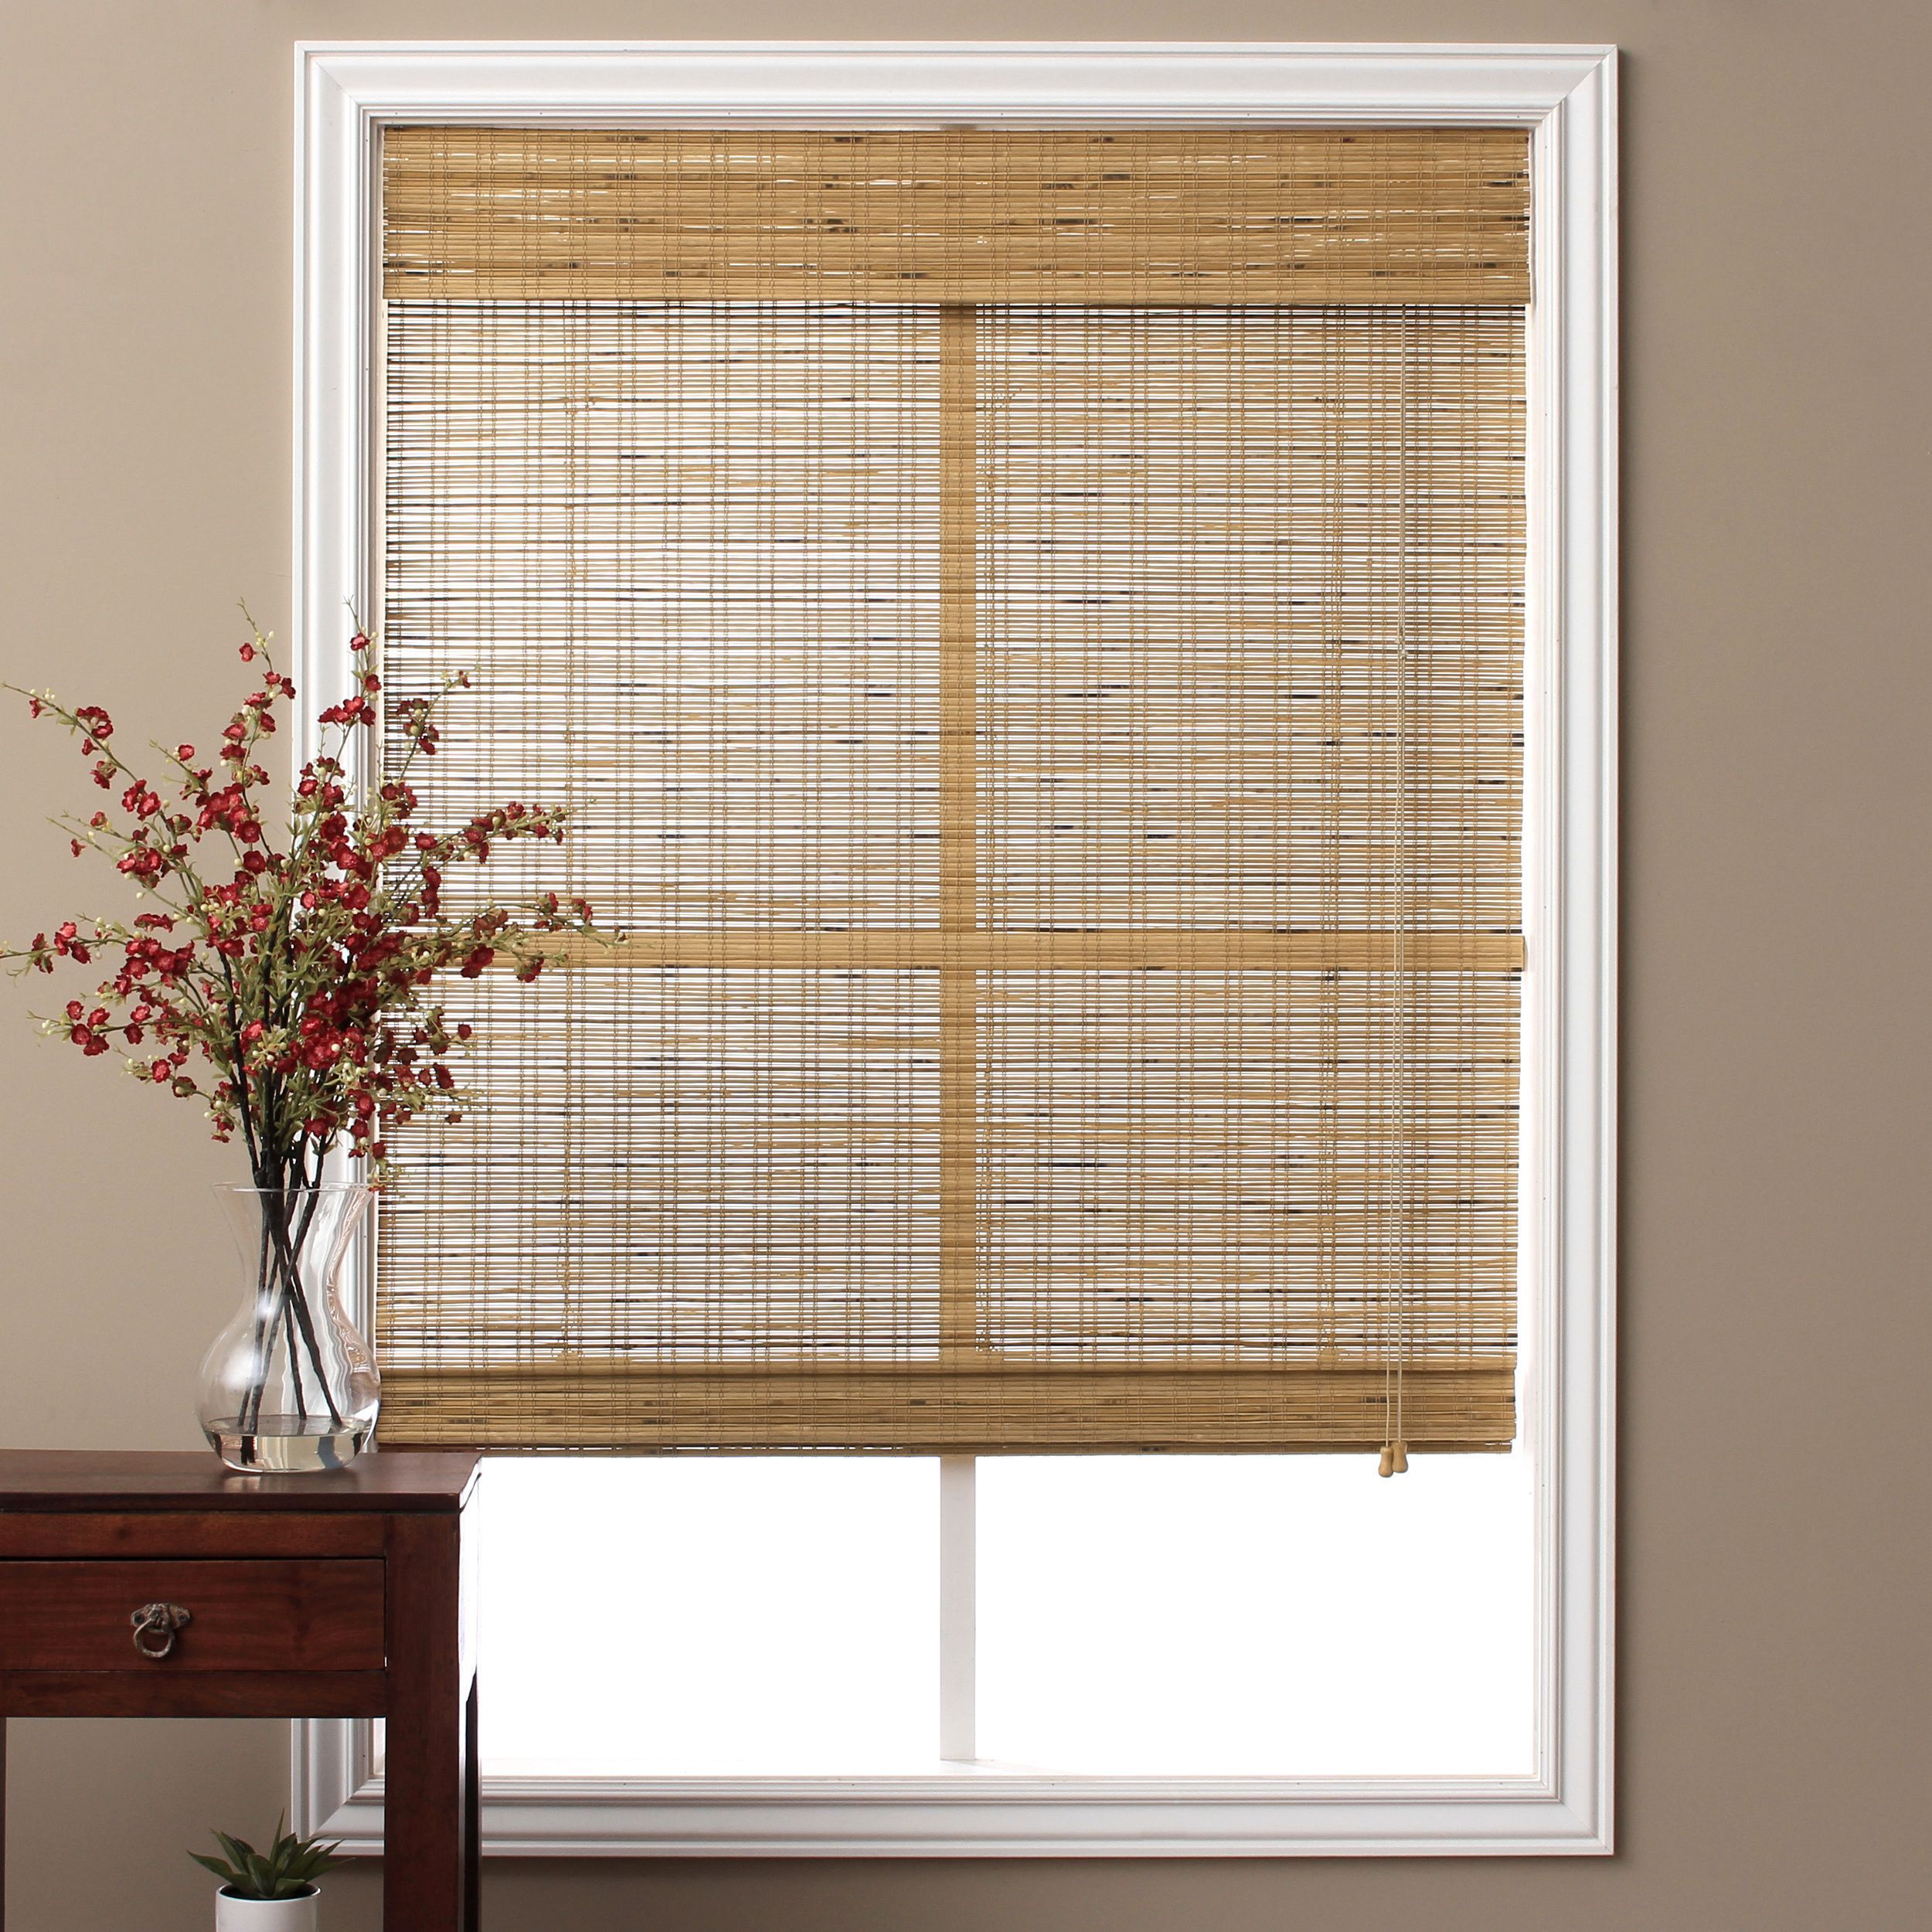 home decorators collection 34 in. w x 72 in. l driftwood flatweave